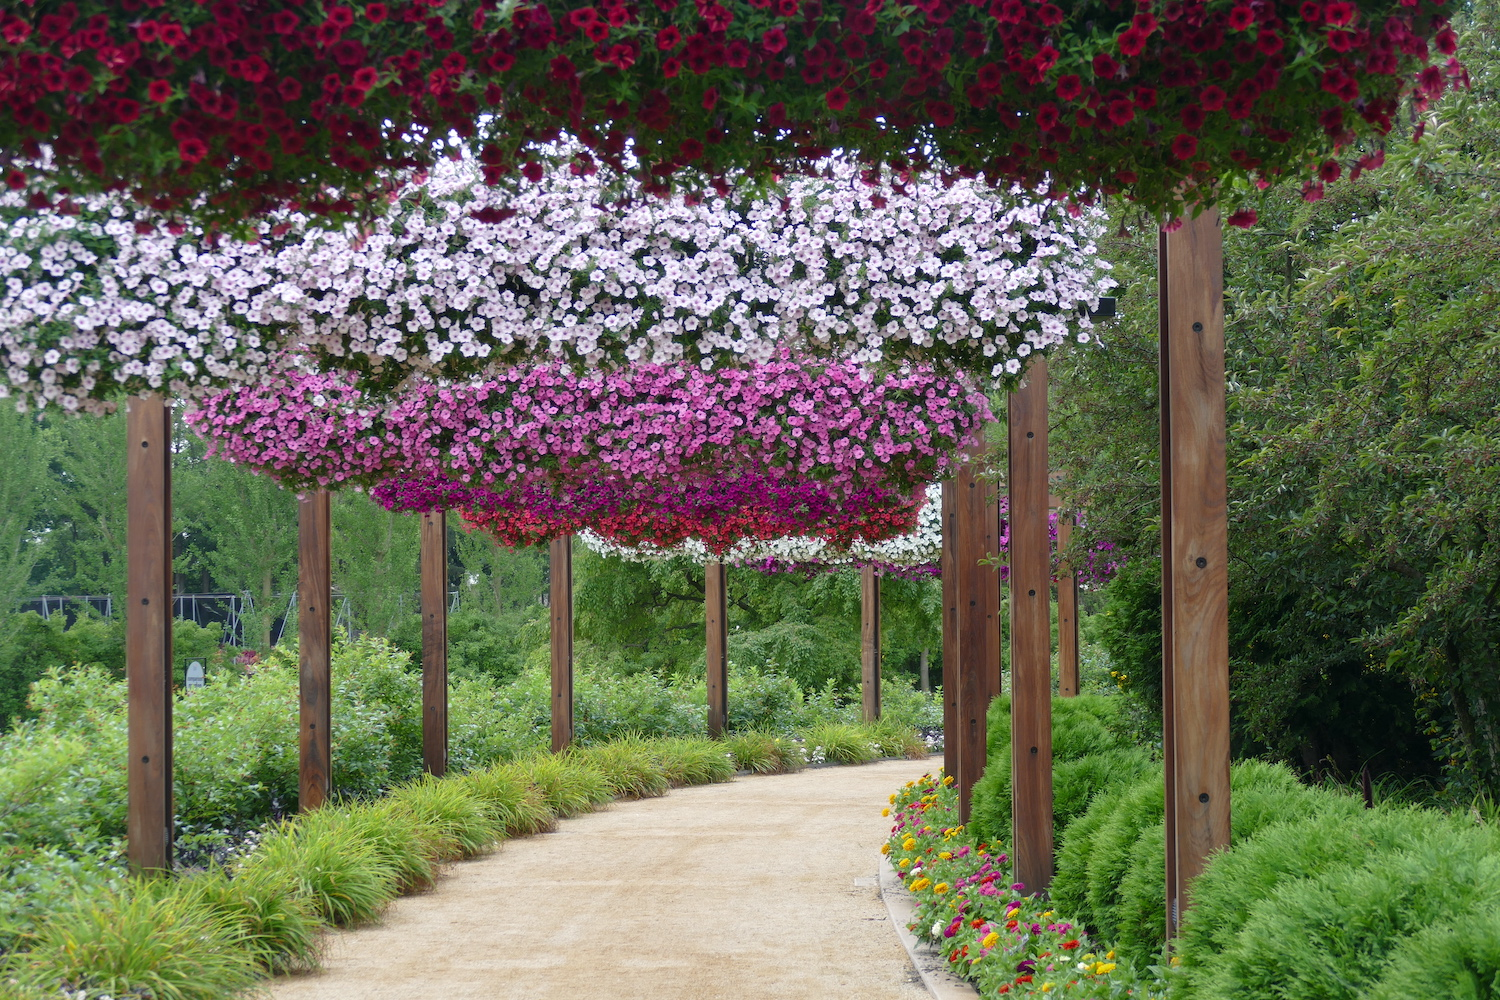 hanging baskets filled with pink and purple flowers